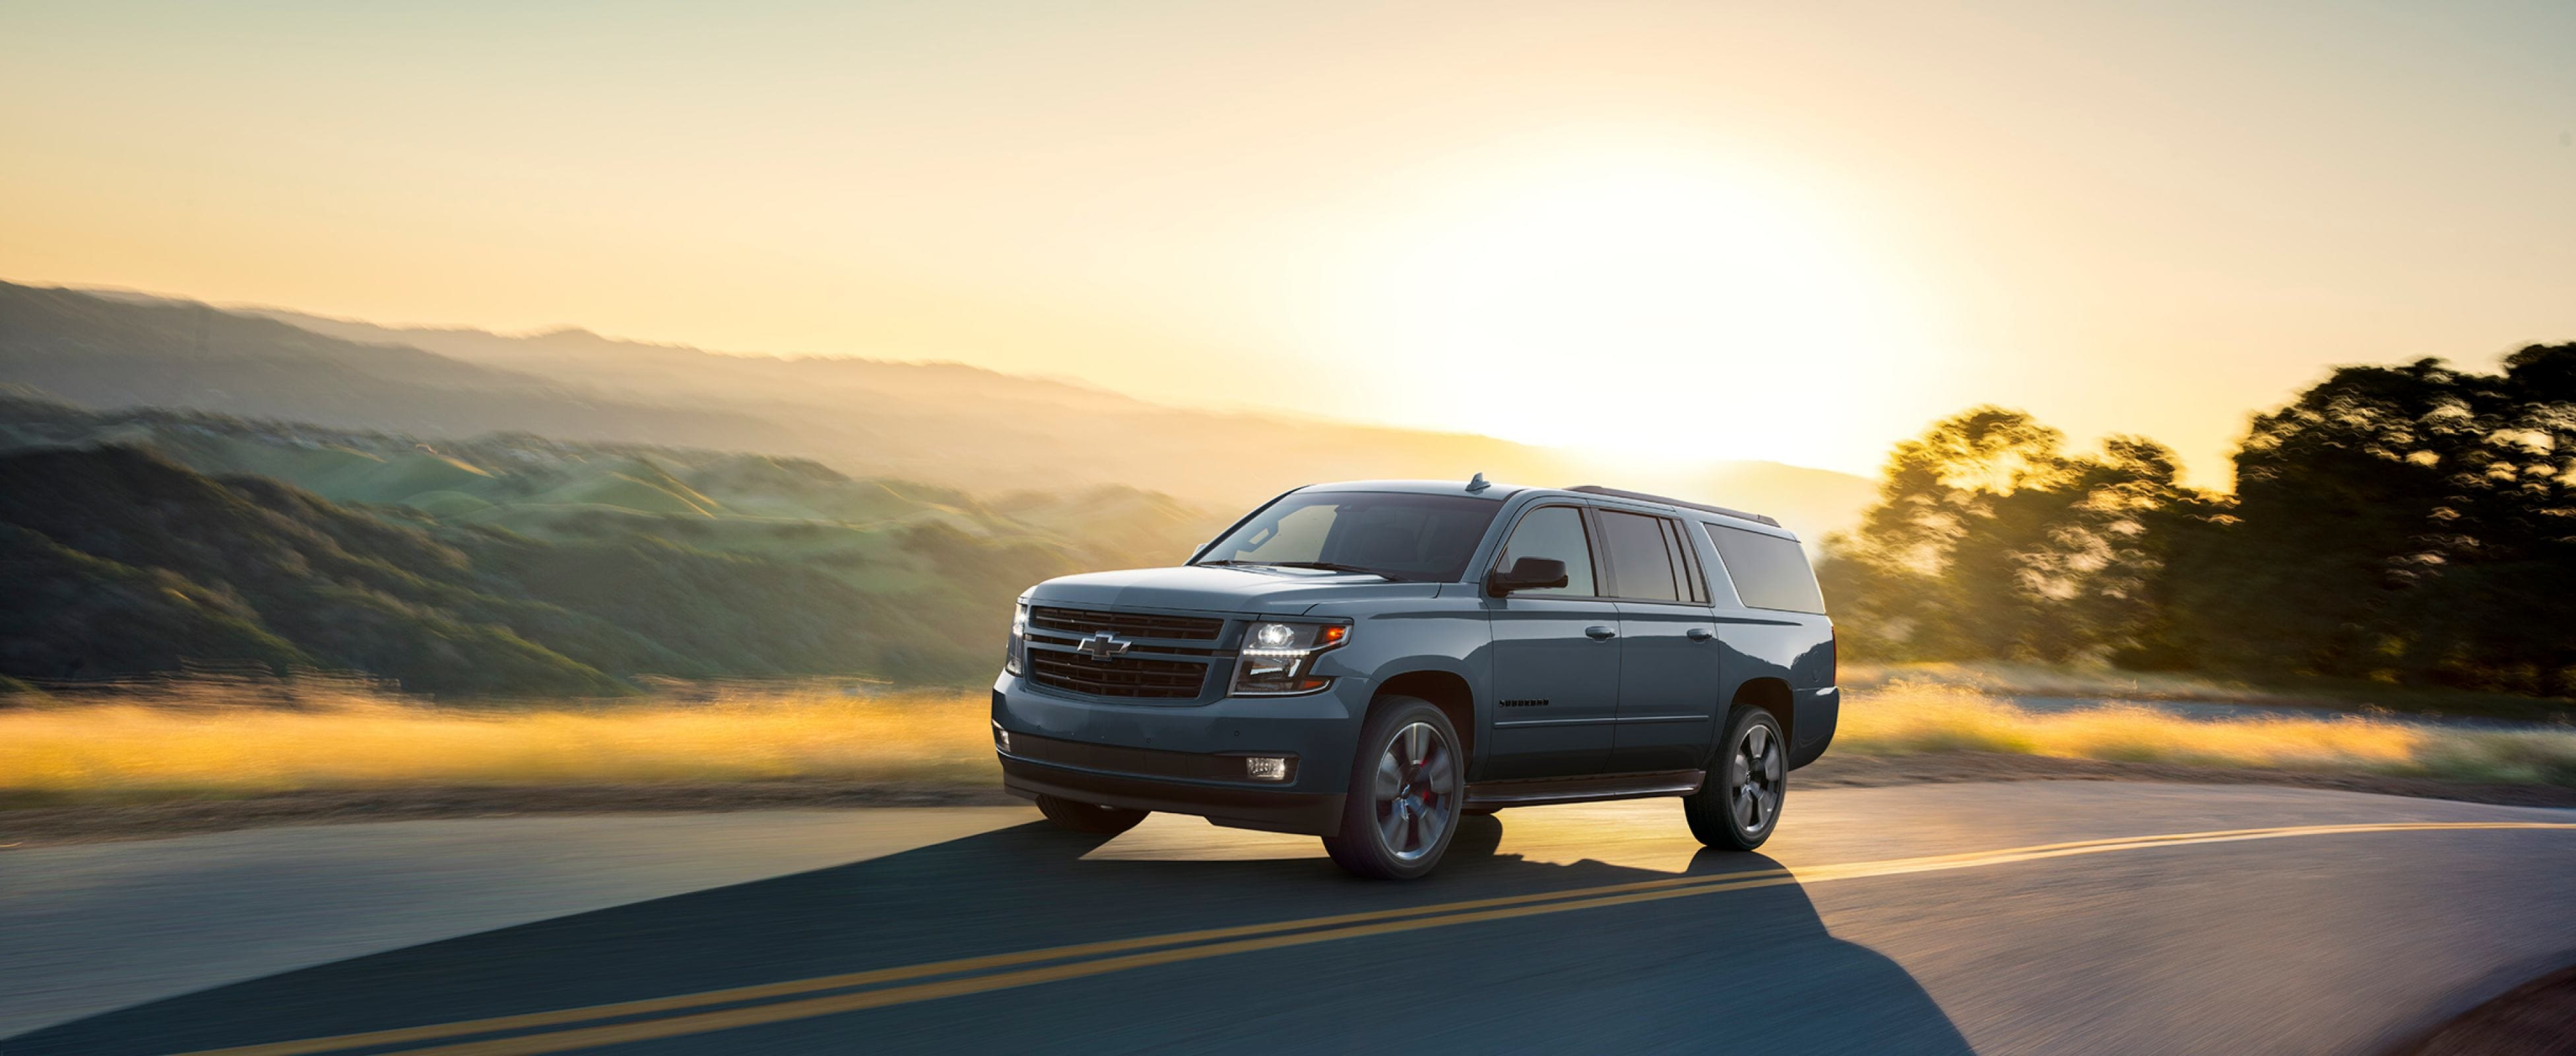 Premium Suv Rental Chevy Suburban Or Similar Budget Rent A Car